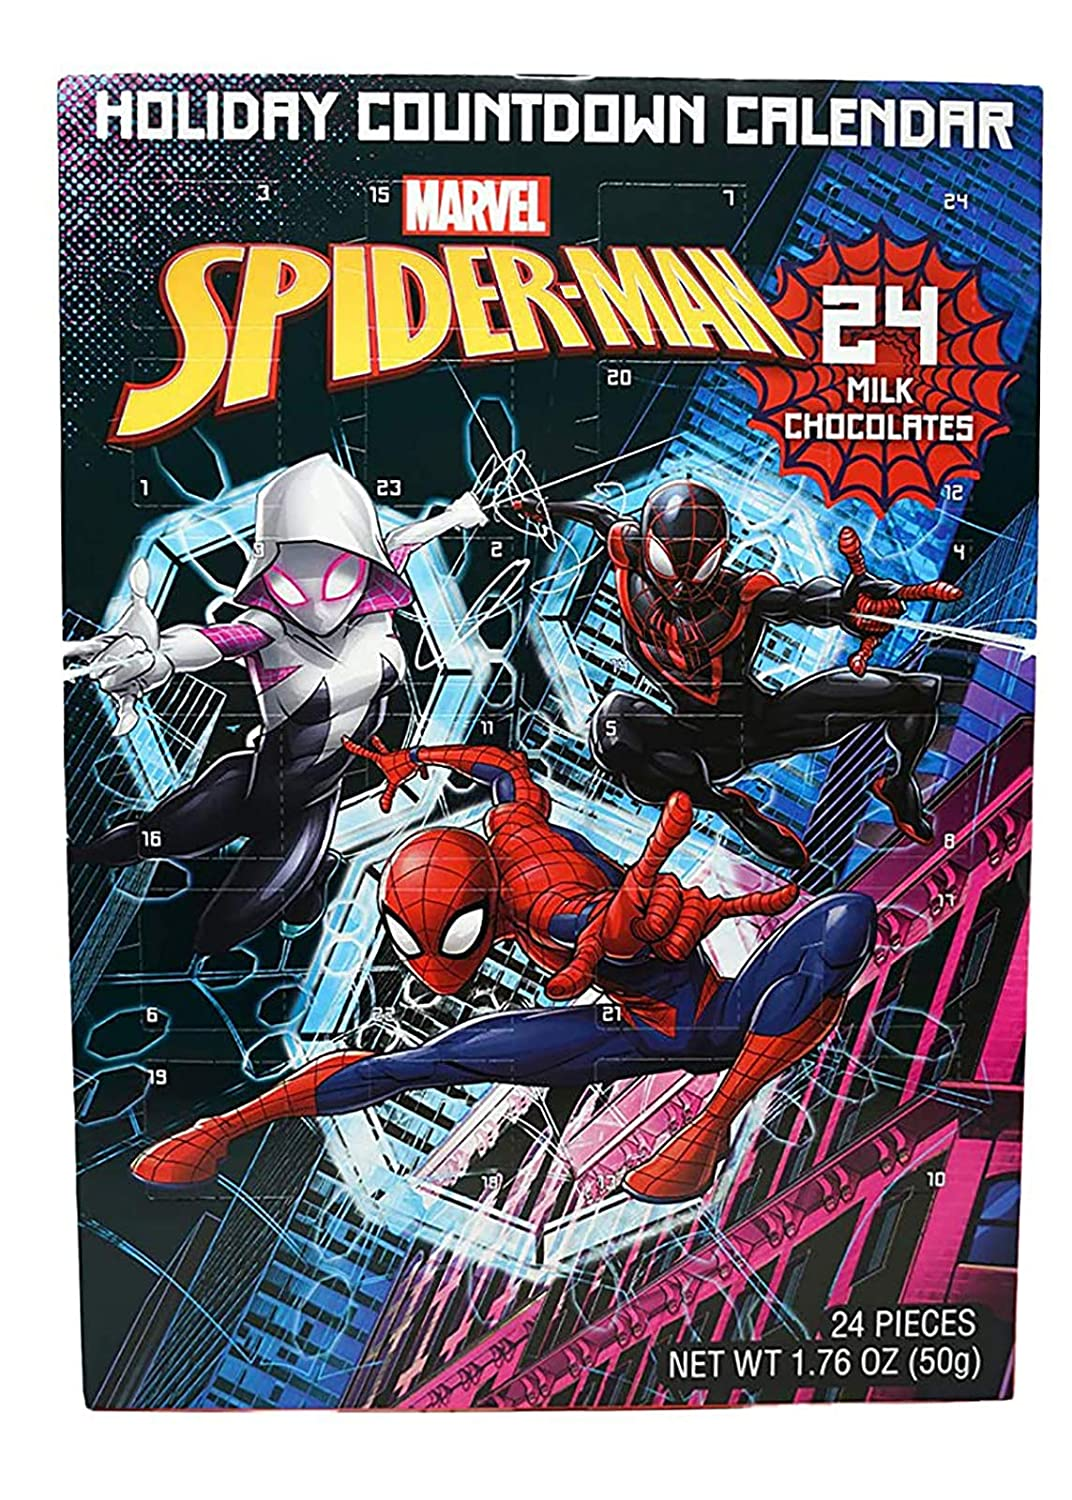 Marvel Spiderman Chocolate Advent Calendar with 24 Milk Chocolates for Holiday Countdown